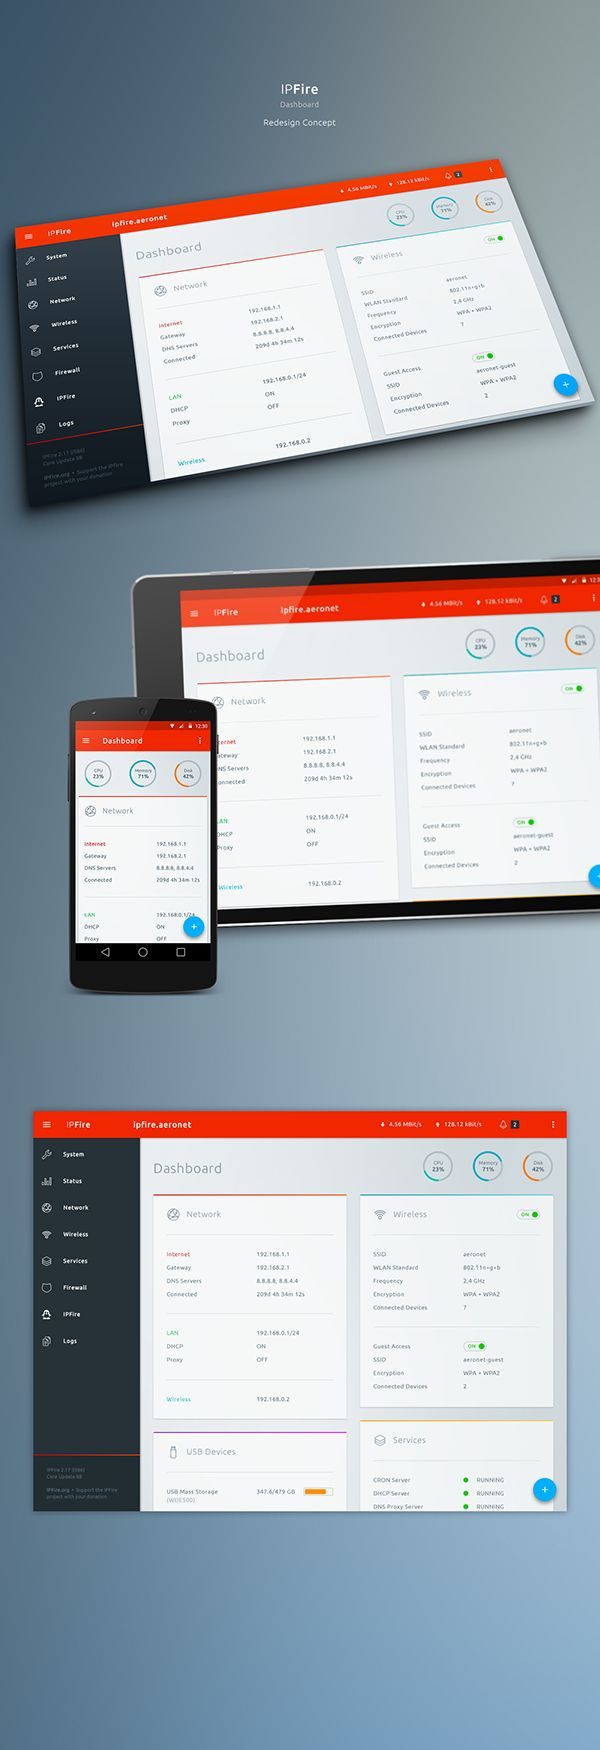 IPFire Concept Redesign I made for fun and practice. Based on Google's Material Design. IPFire is a great and powerful Open Source Firewall Distribution. Get it for free from here: http://www.ipfire.org/